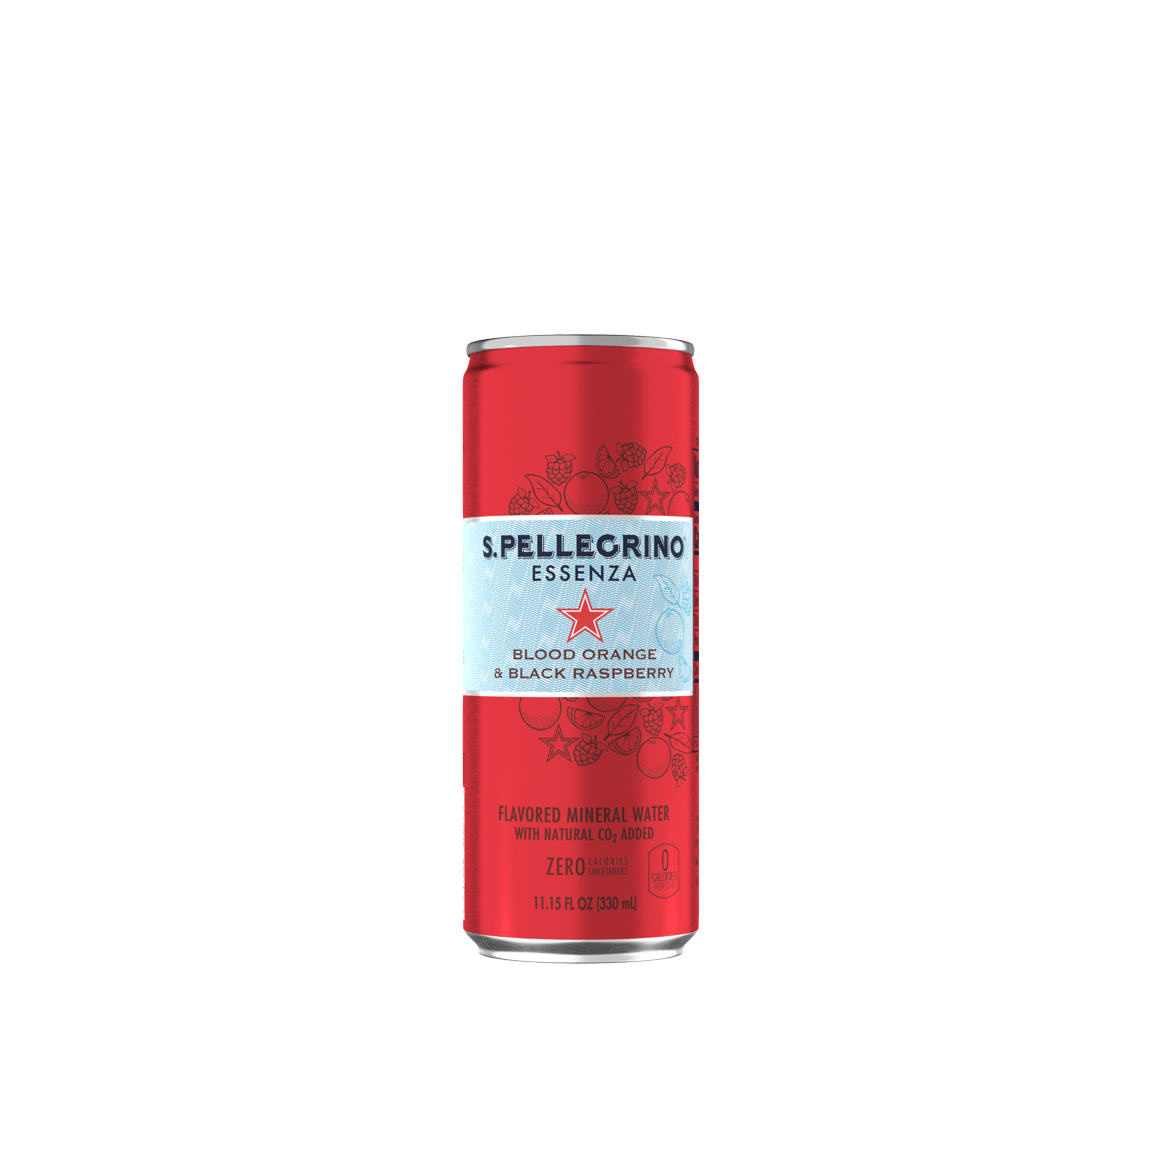 S.Pellegrino® Essenza™ Sparkling Natural Mineral Water - Rainbow Image3